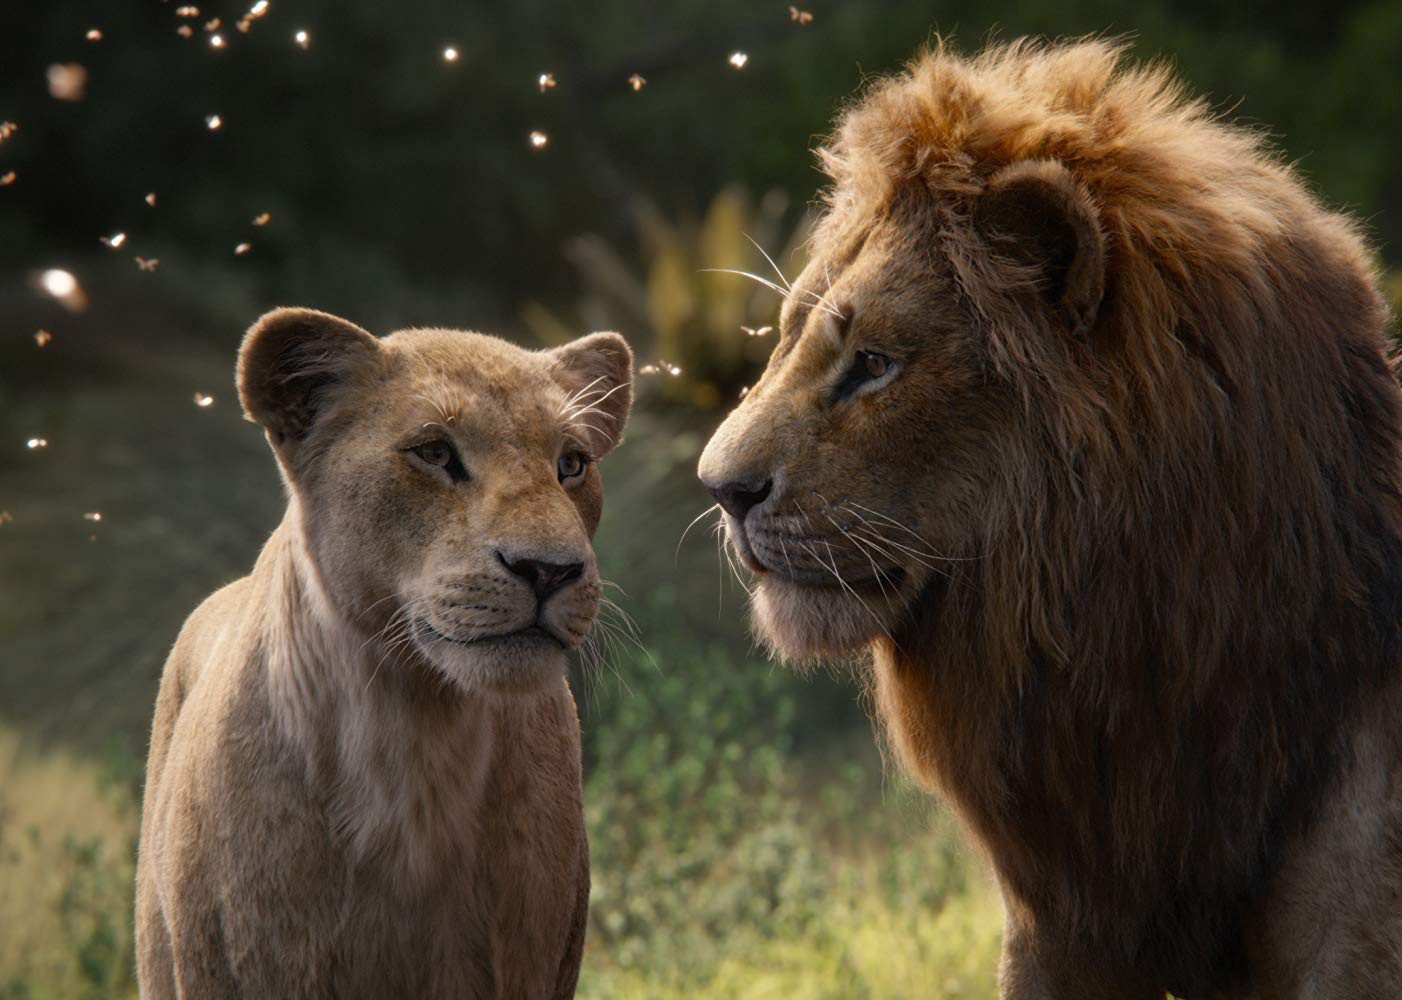 The Lion King 2019 Release Date The Lion King 2019